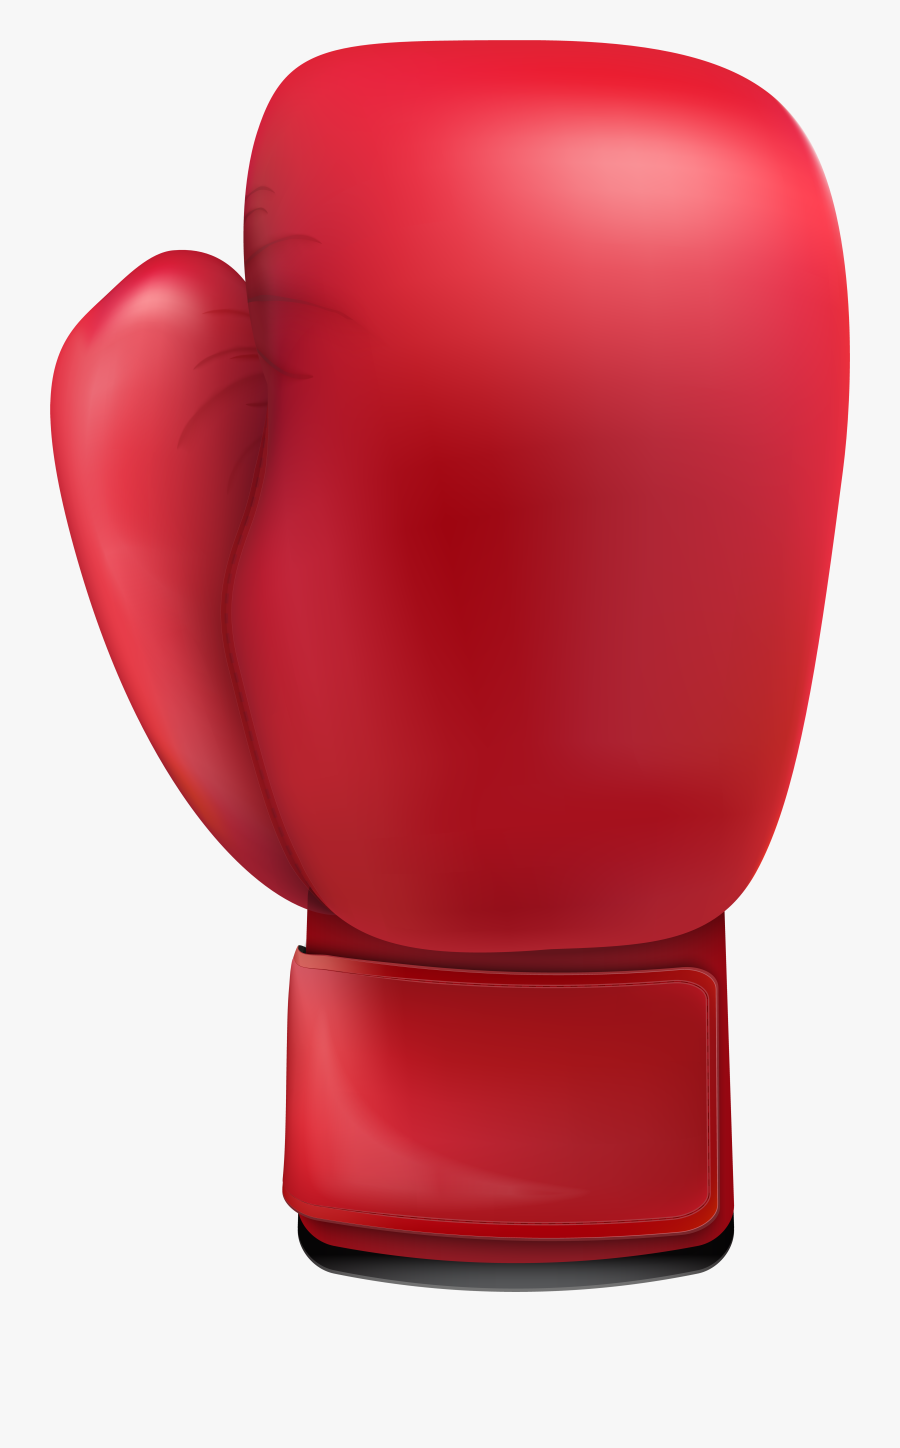 Boxing Glove Clip Art - Red Boxing Glove Clipart, Transparent Clipart